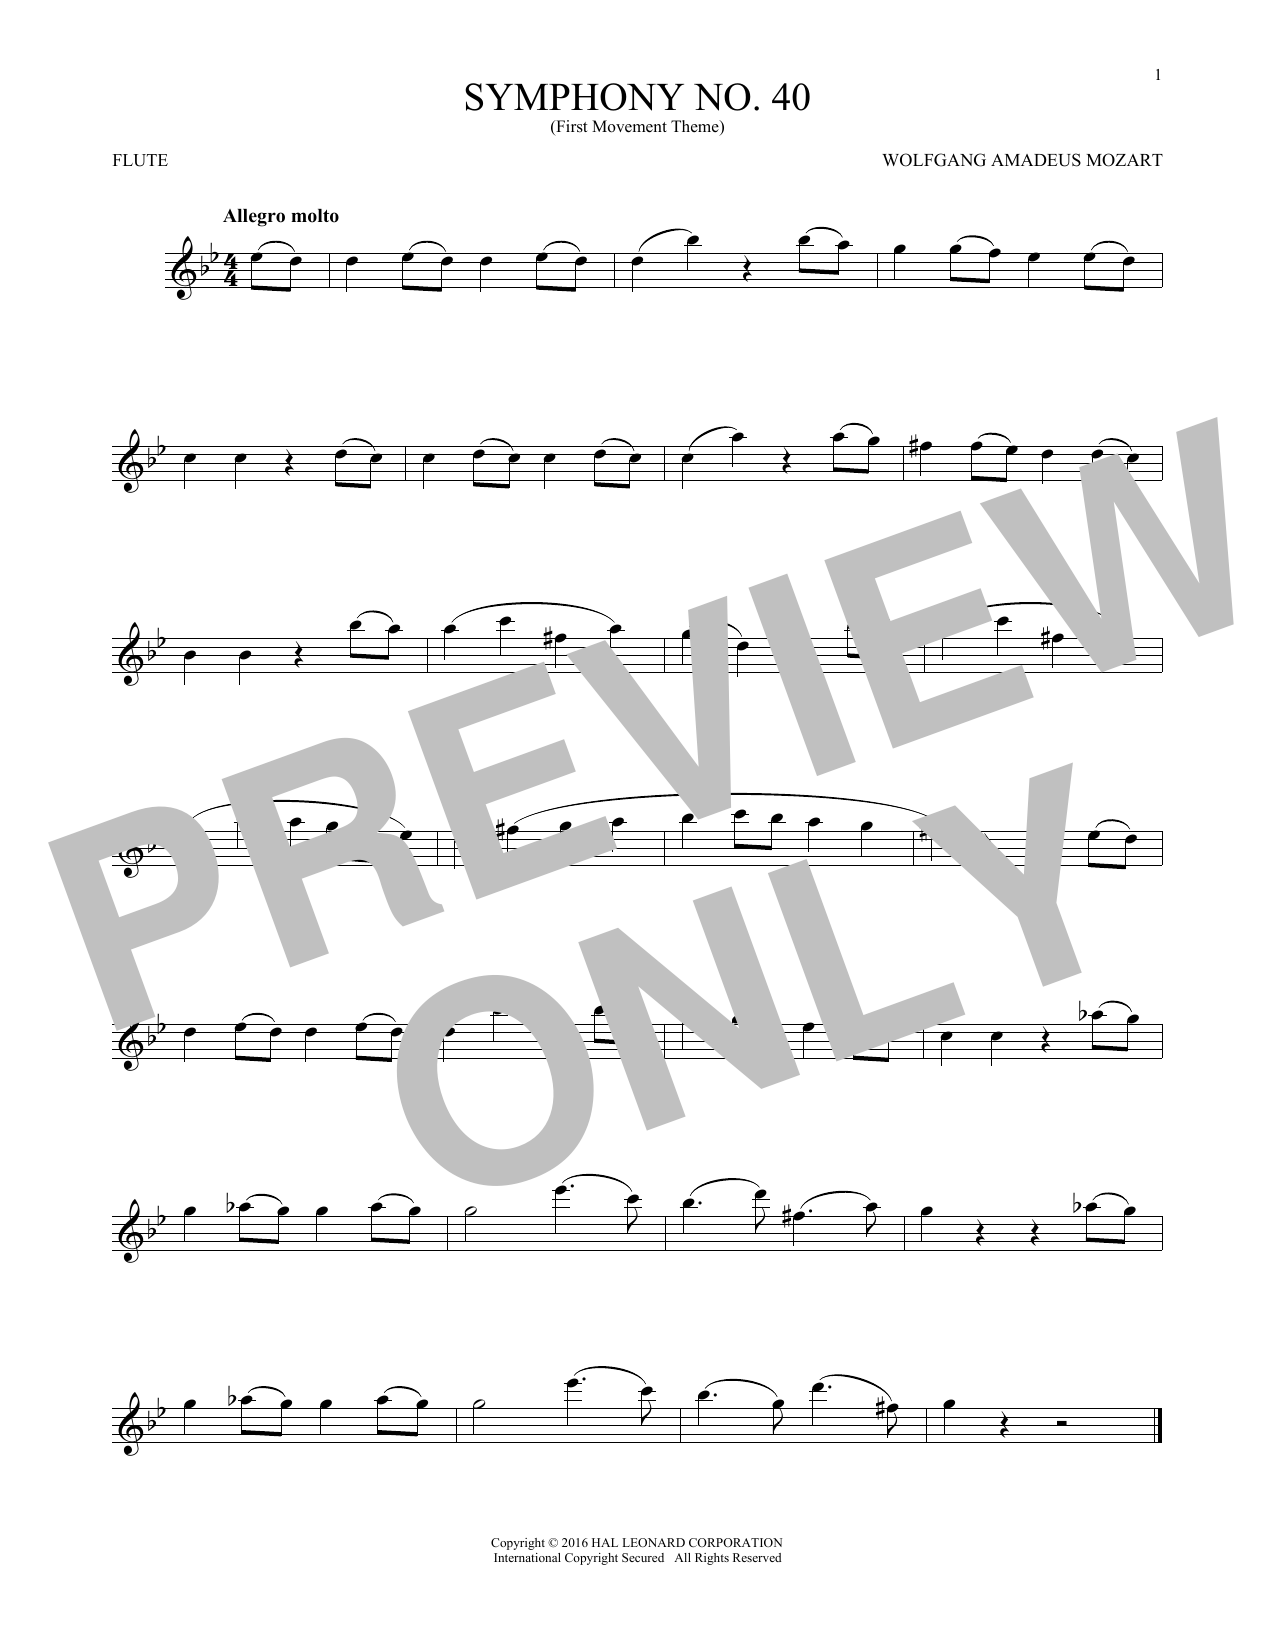 Symphony No. 40 In G Minor, First Movement Excerpt (Flute Solo)